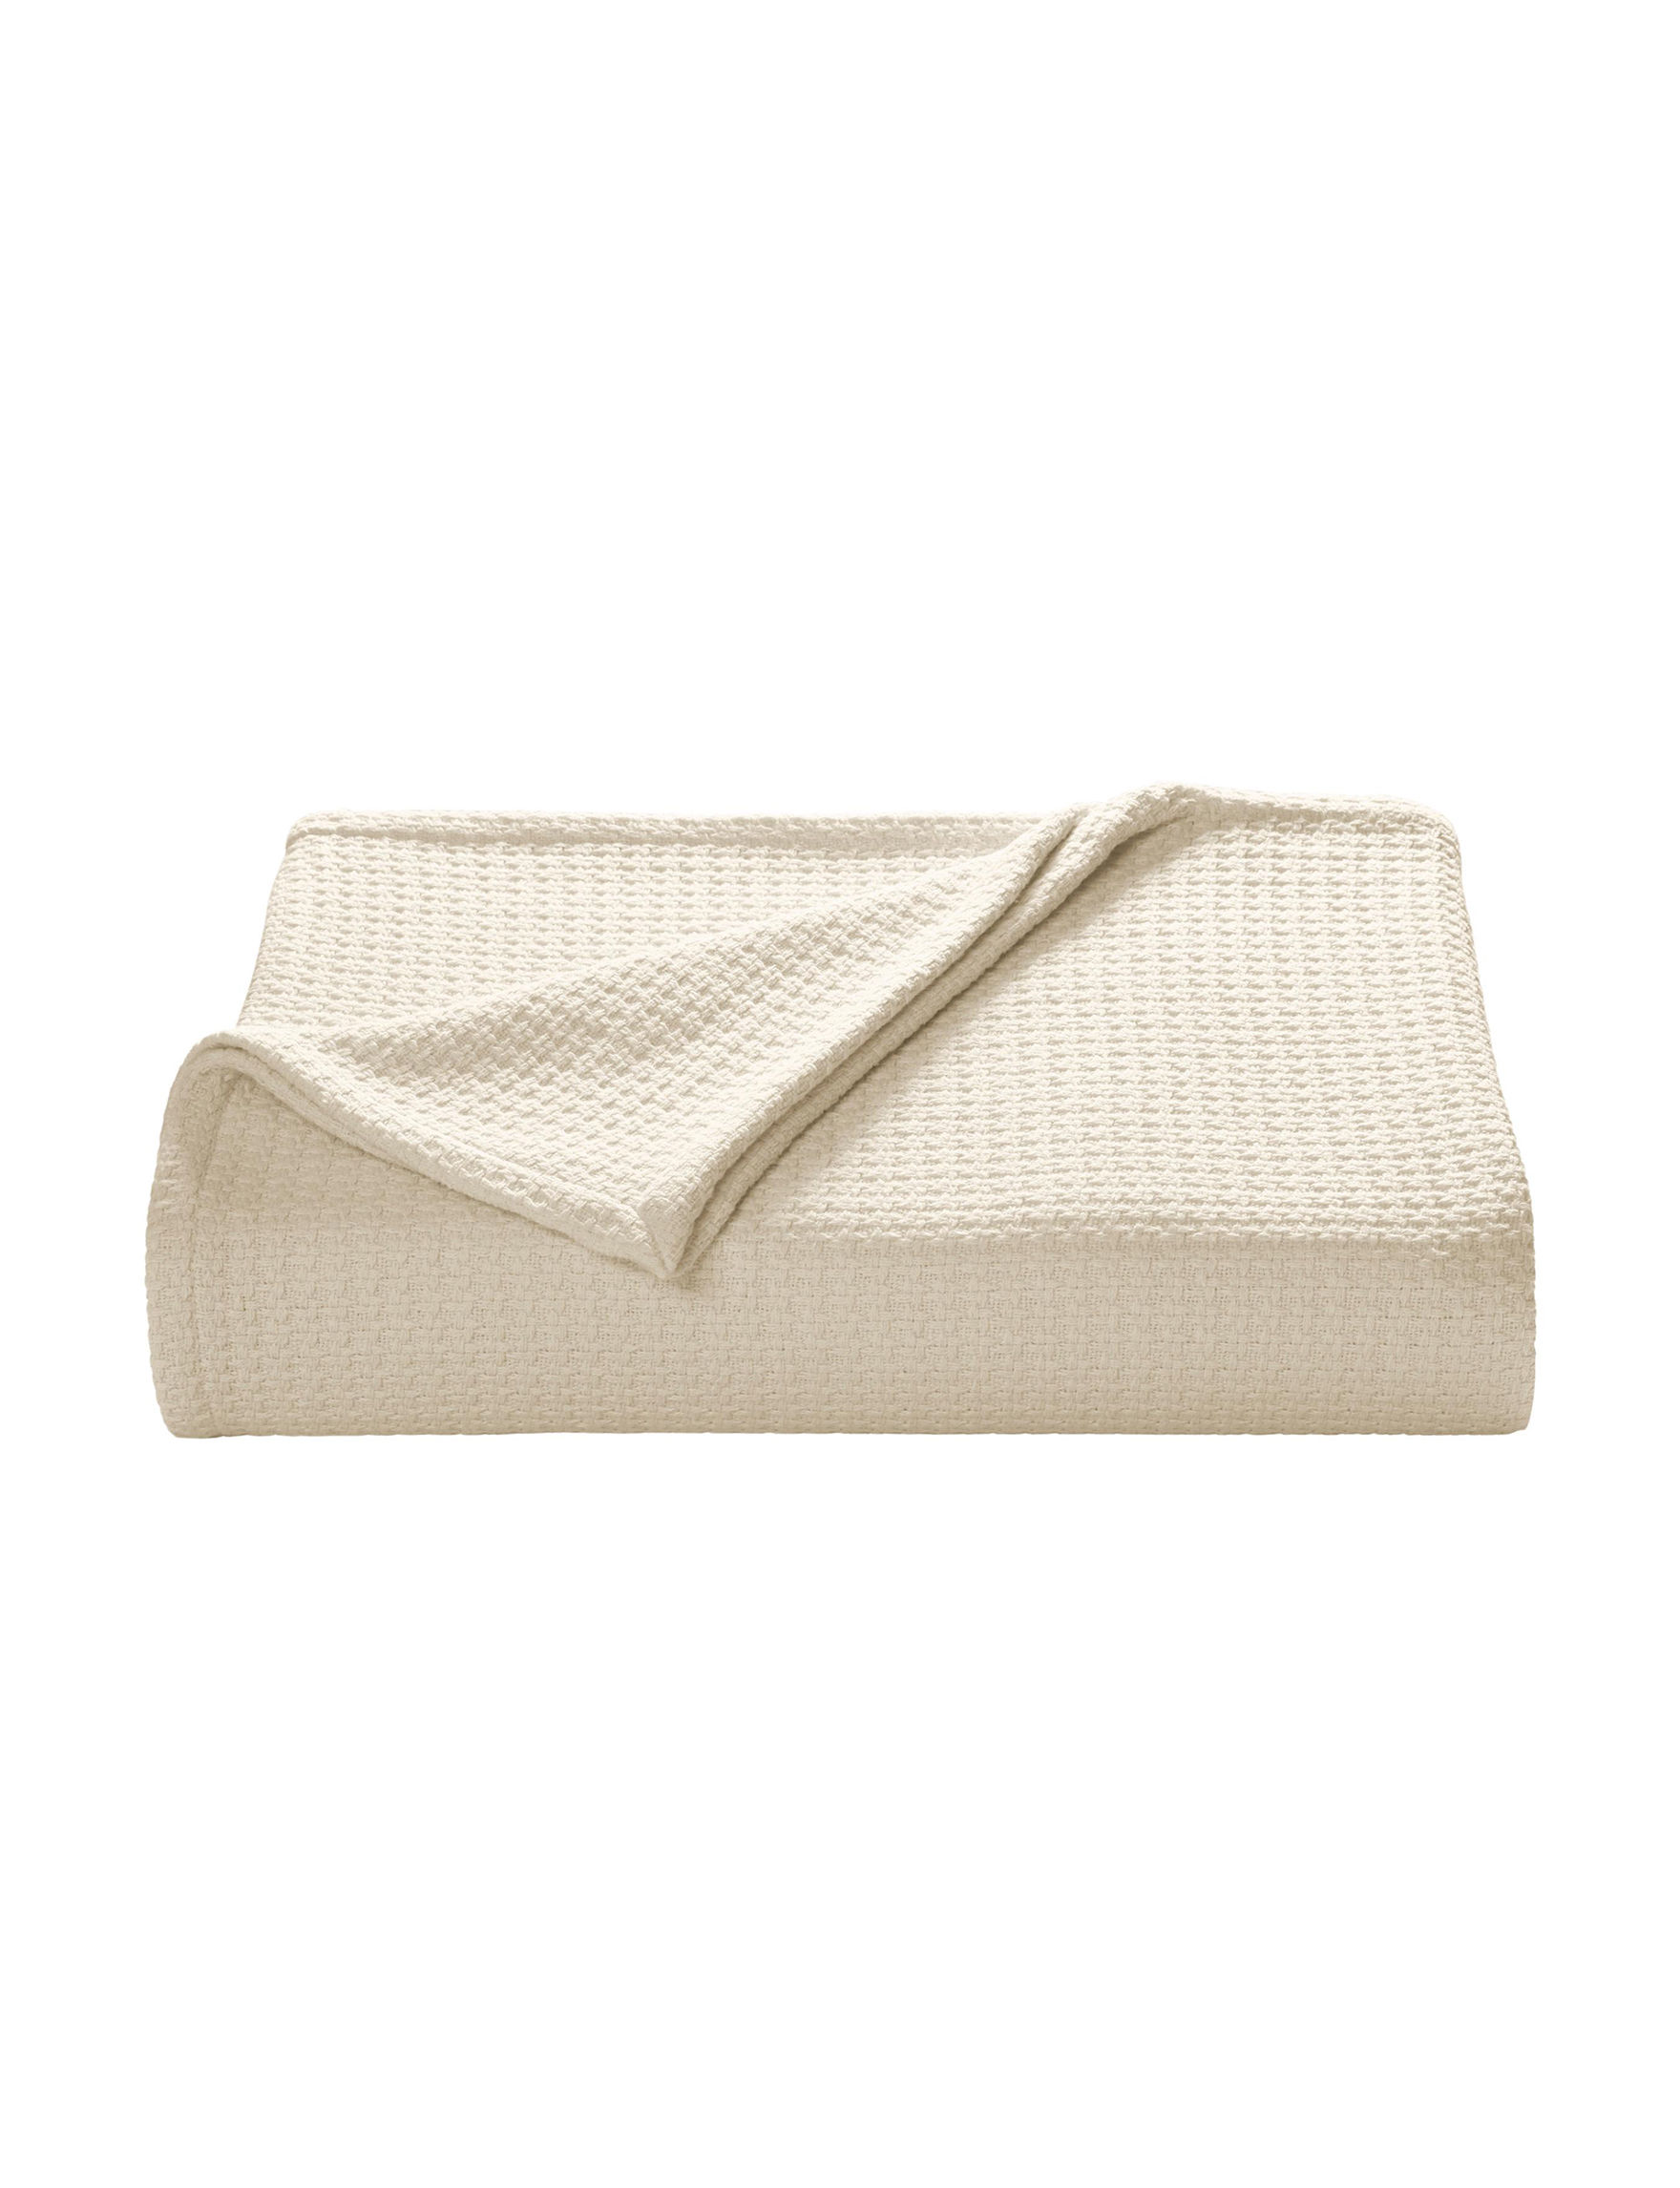 Tommy Bahama White Blankets & Throws